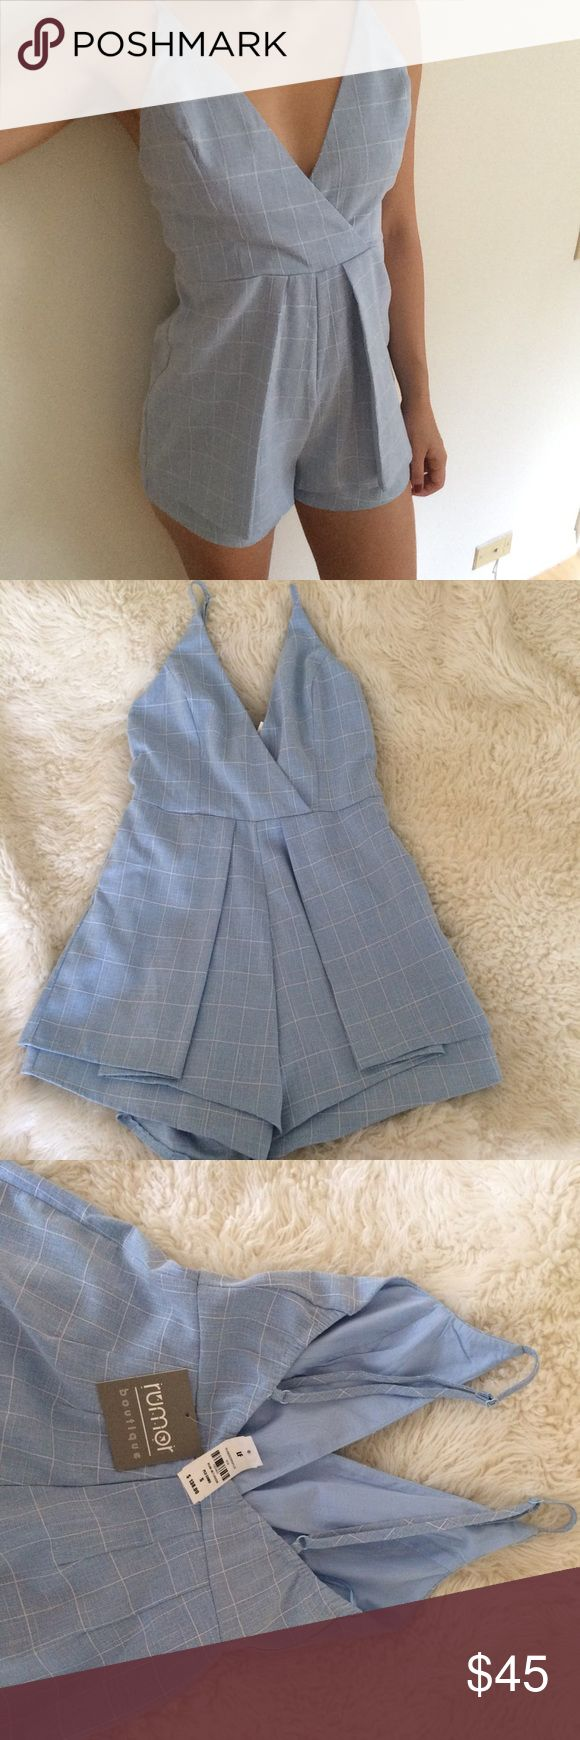 Blue and white striped pleated nautical romper Brand-new never worn with tags still attached. Features pleaded short and adjustable straps, with back zipper. Bought from LF store LF Pants Jumpsuits & Rompers